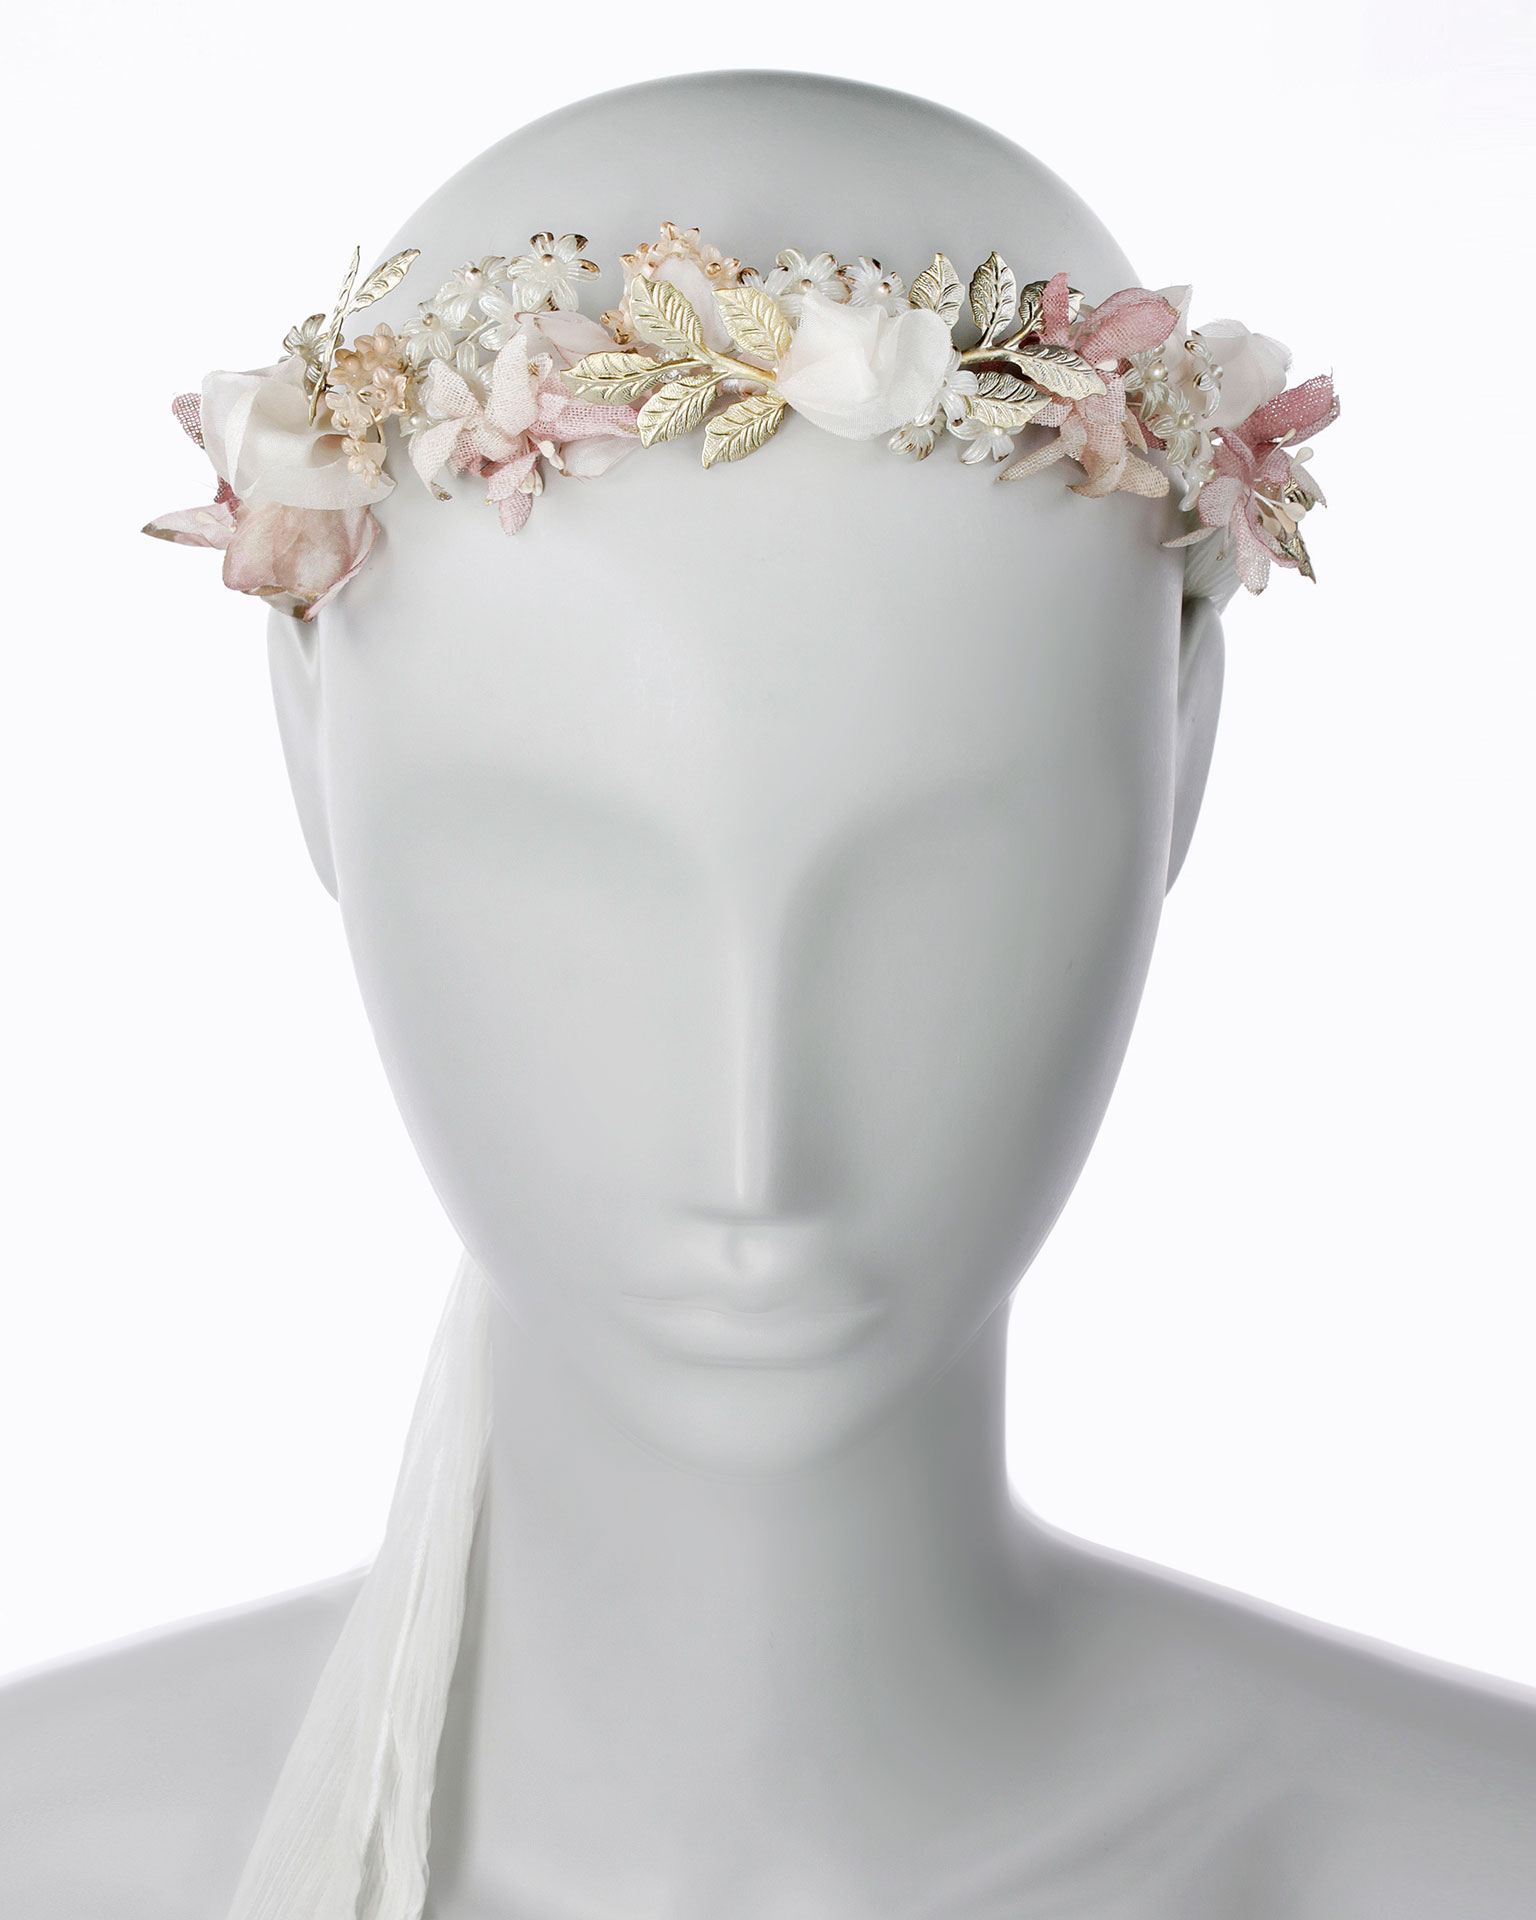 Bridal headpiece with flowers. With strips of chiffon. Available in pink/natural. 2019 MARTHA_BLANC Collection.